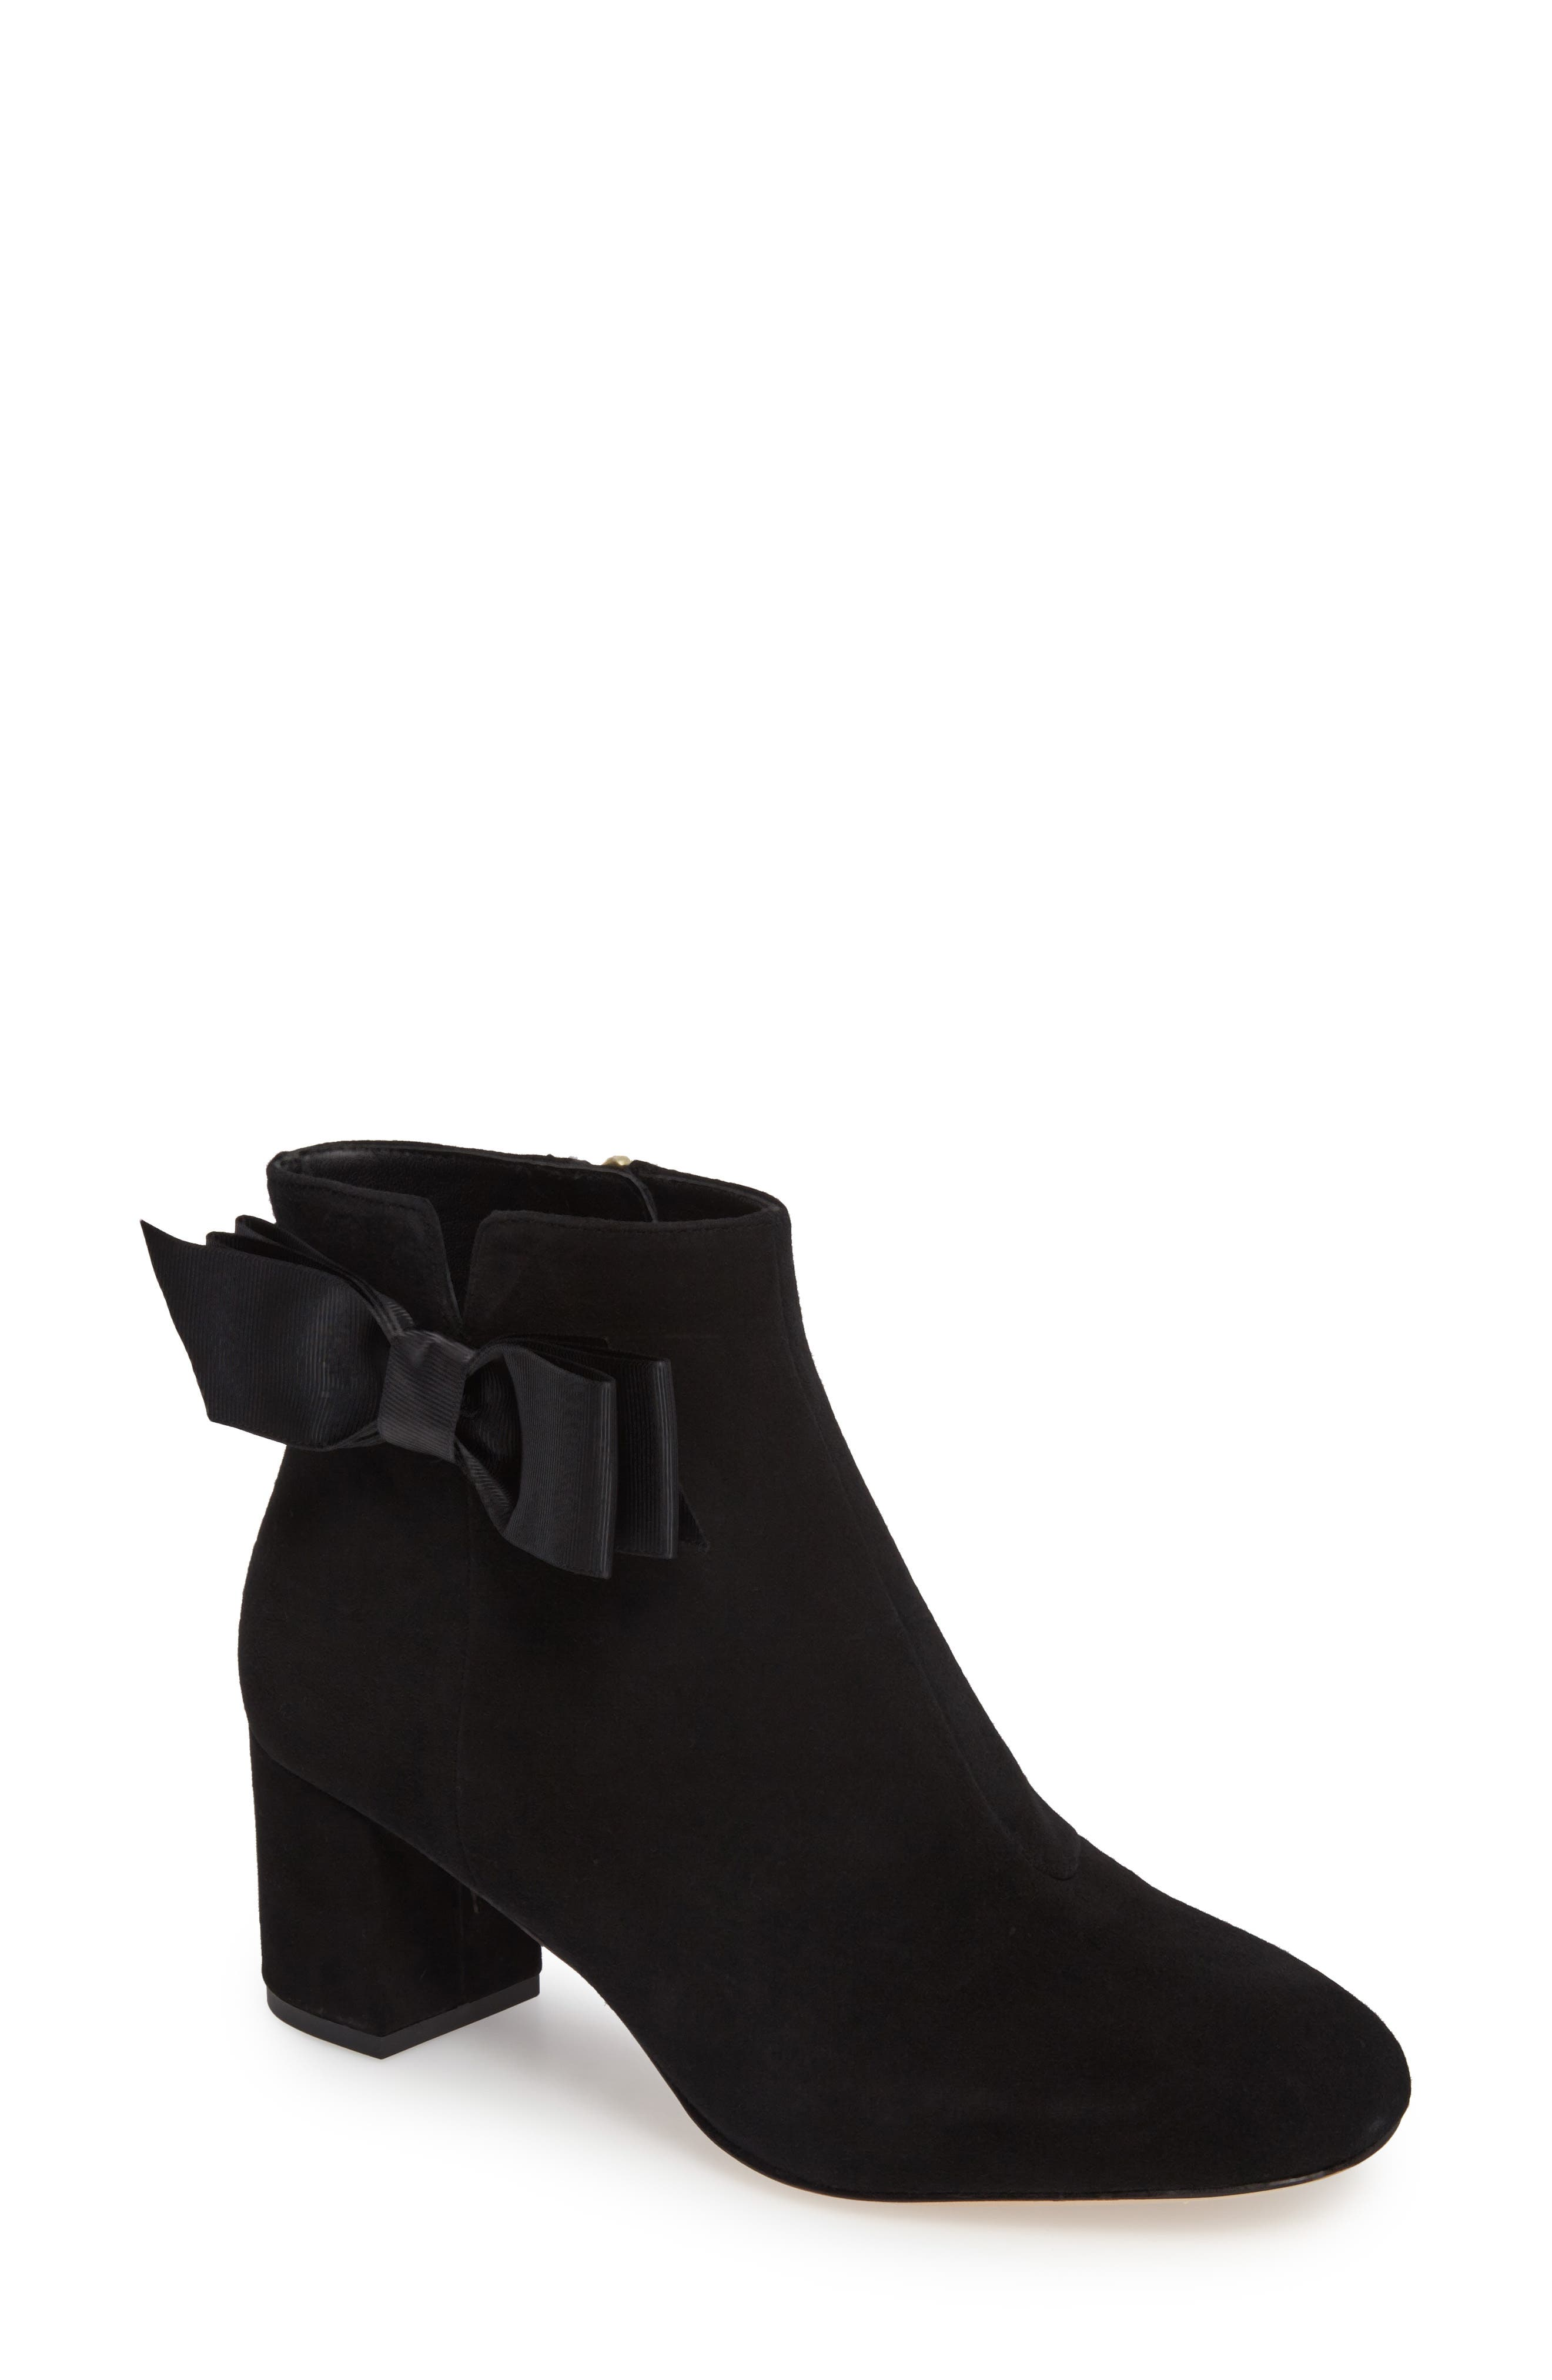 KATE SPADE NEW YORK langley bow bootie